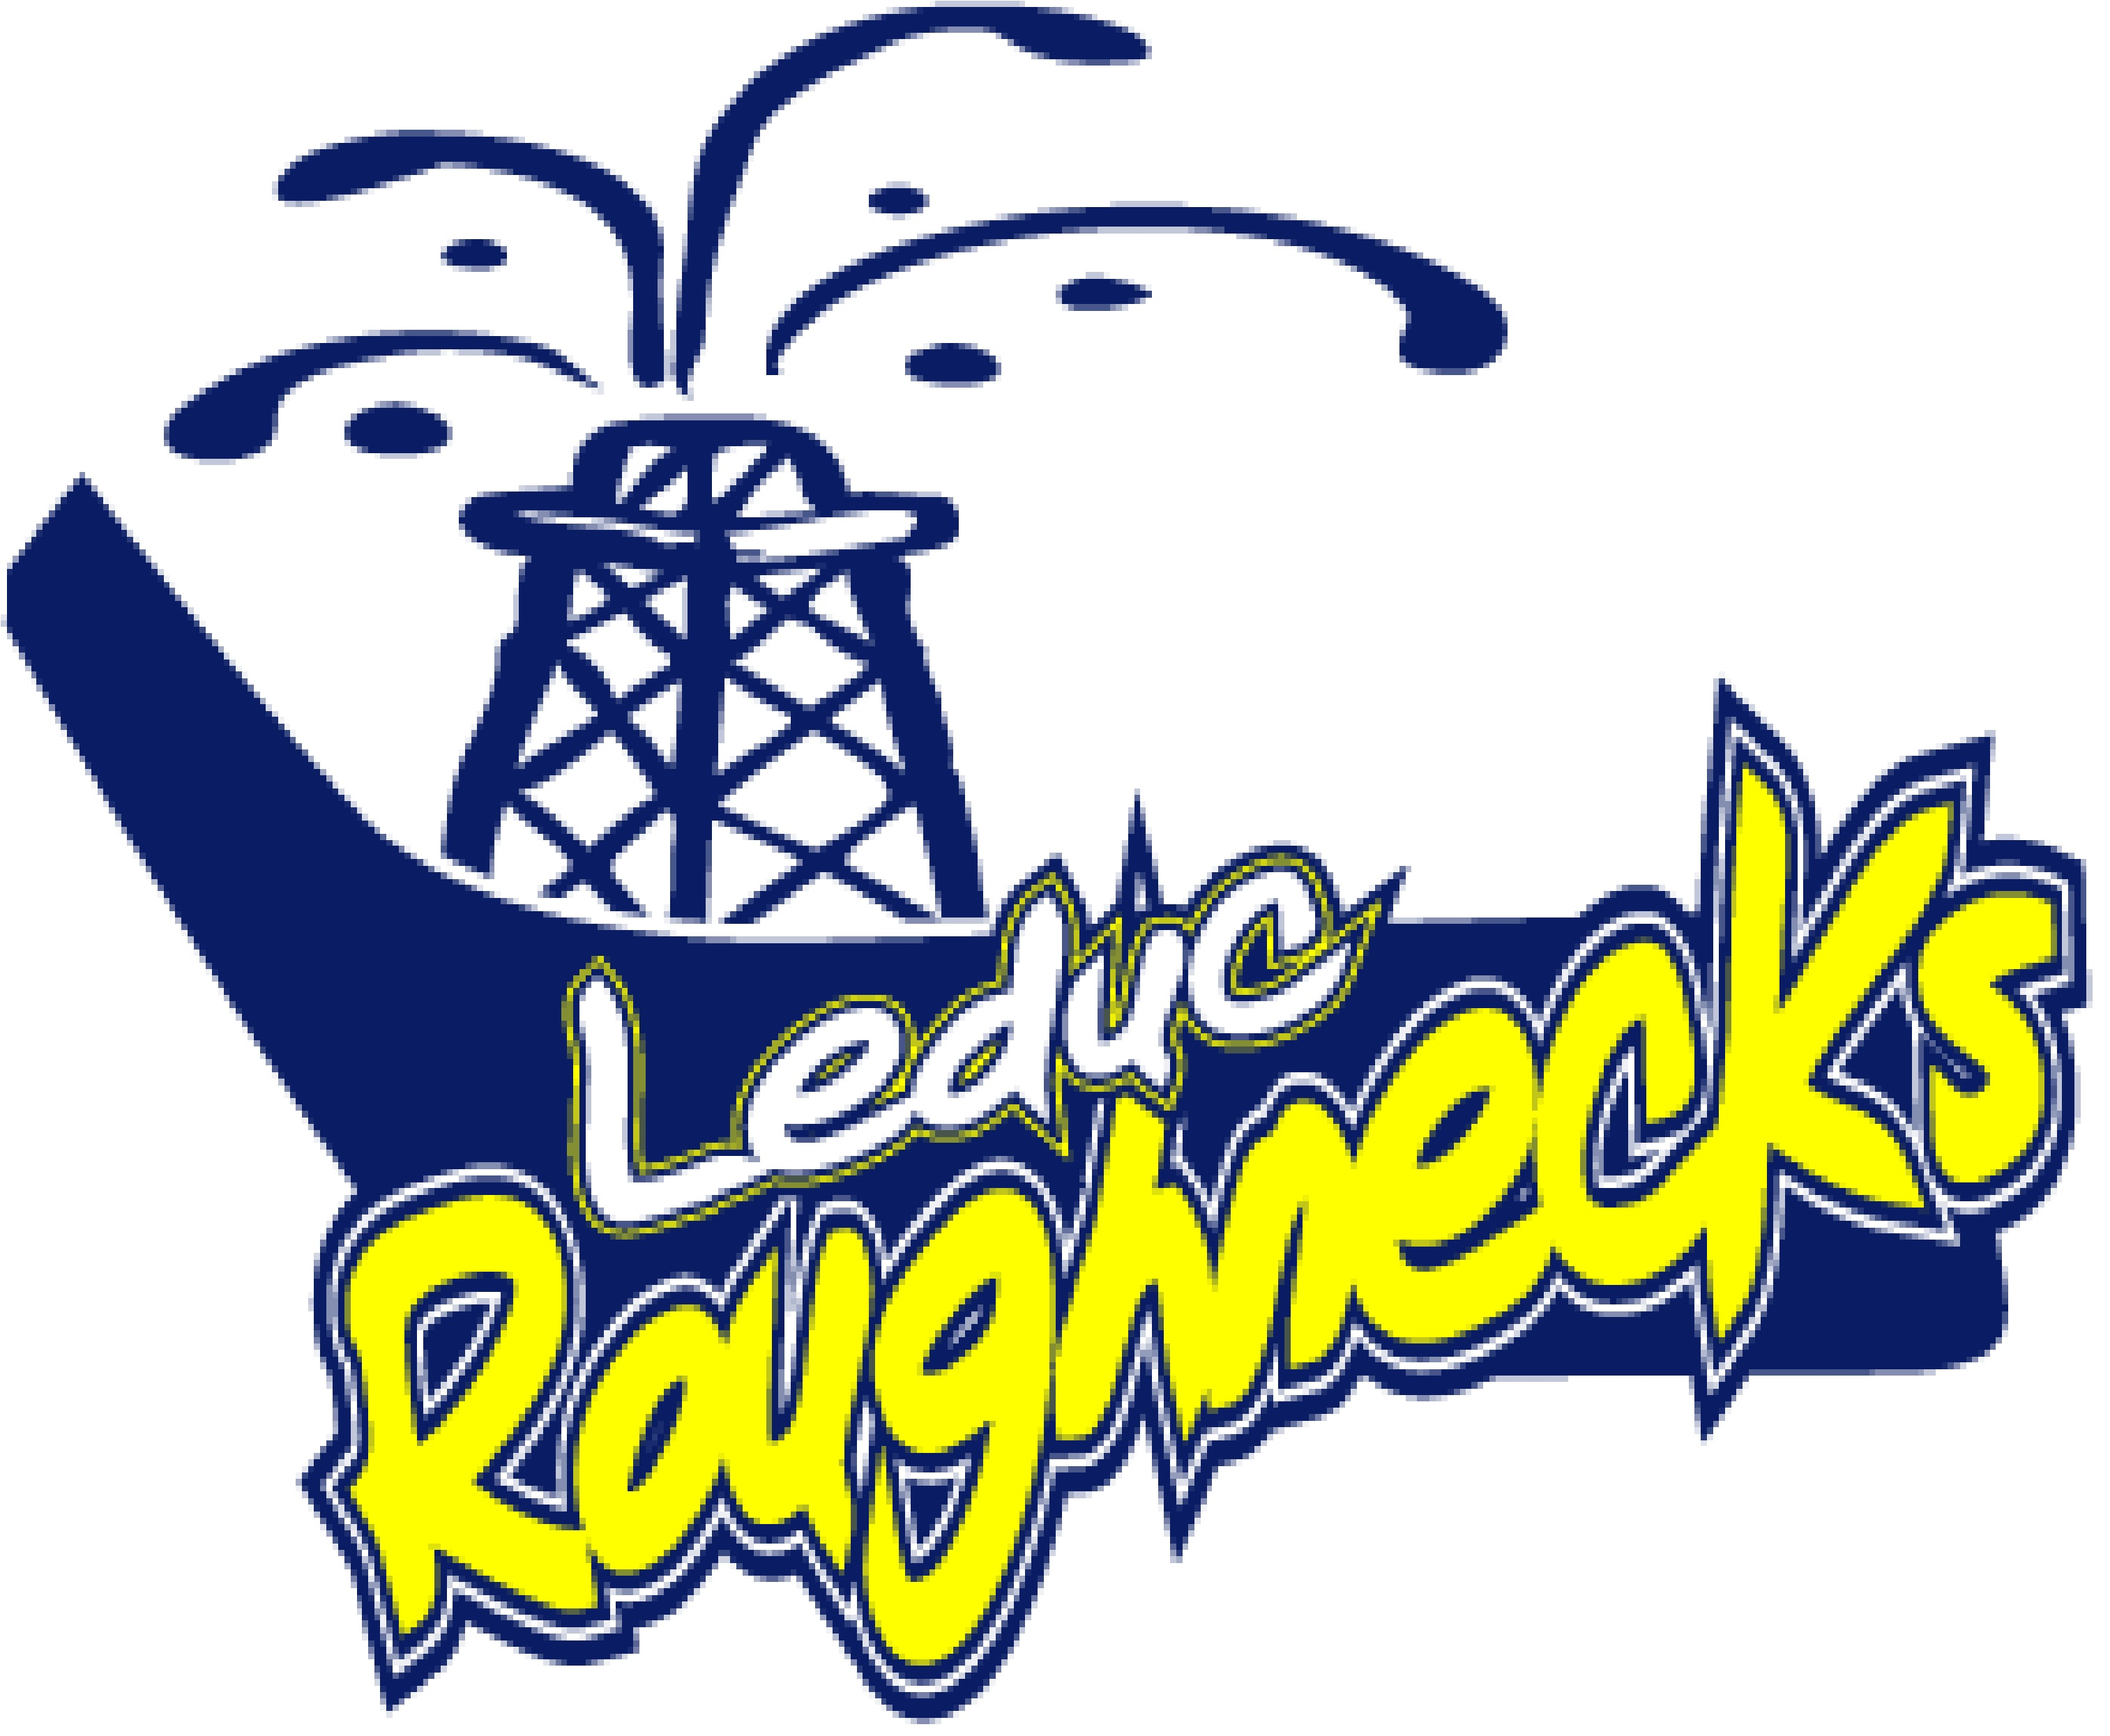 leduc dating site Edmonton (/ ˈ ɛ d m ə n t ən / (  the city of edmonton and leduc county came to an  a calgary garrison unit dating back to before world war i edmonton also.